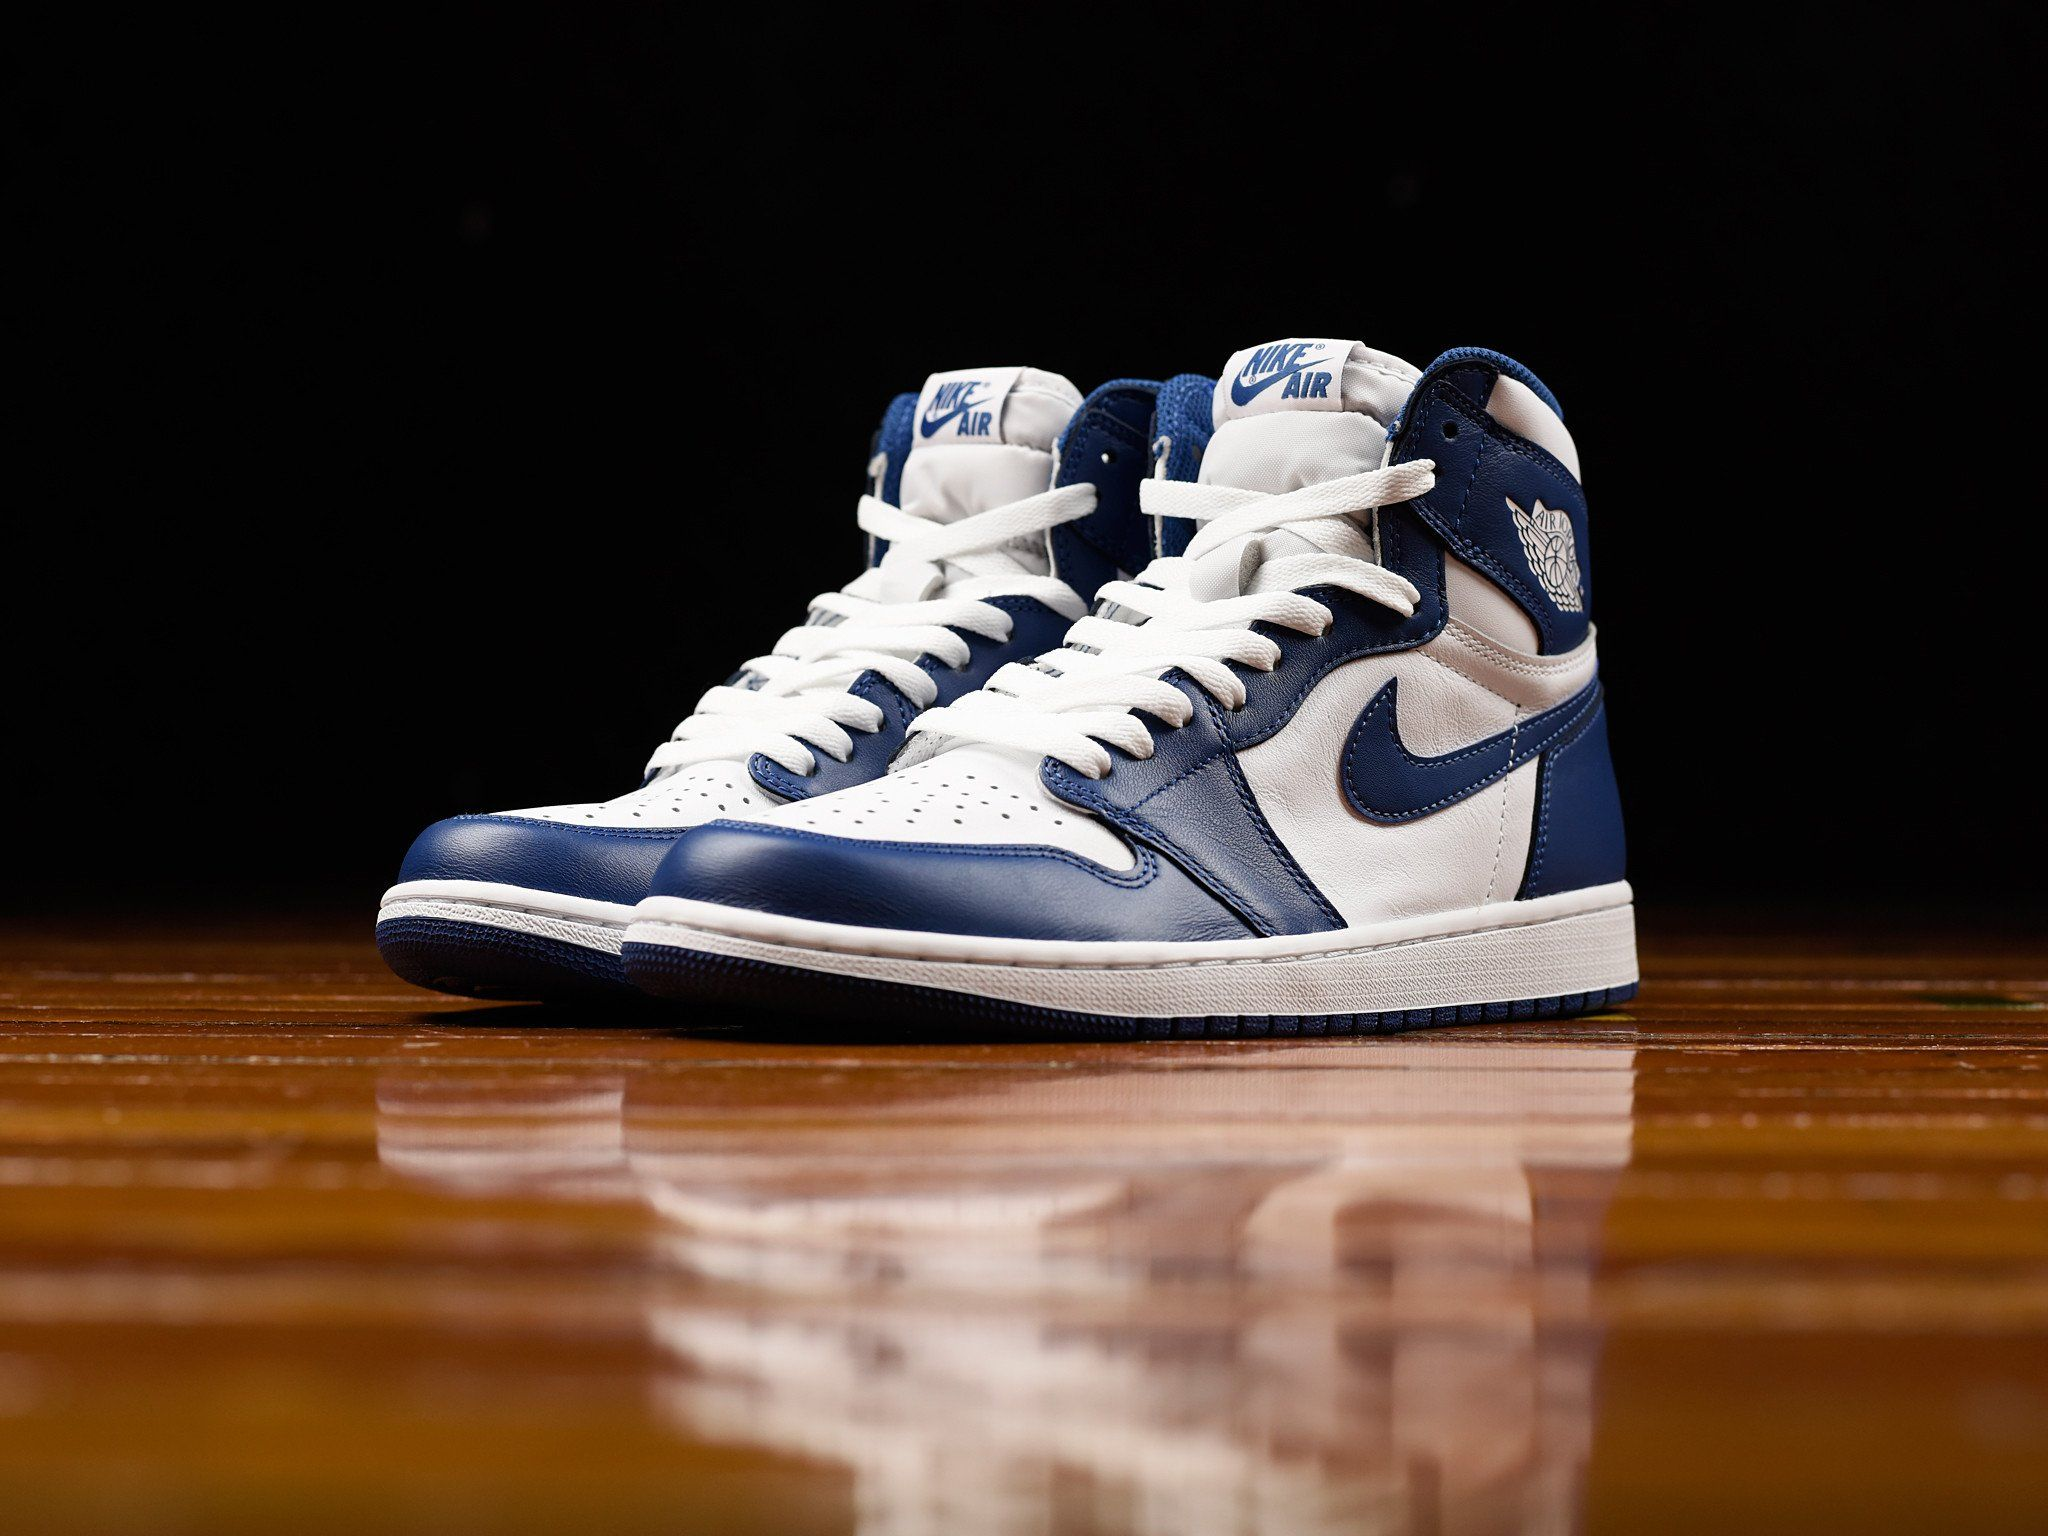 Air Jordan 1 Retro High Og Storm Blue In 4 Days With Images